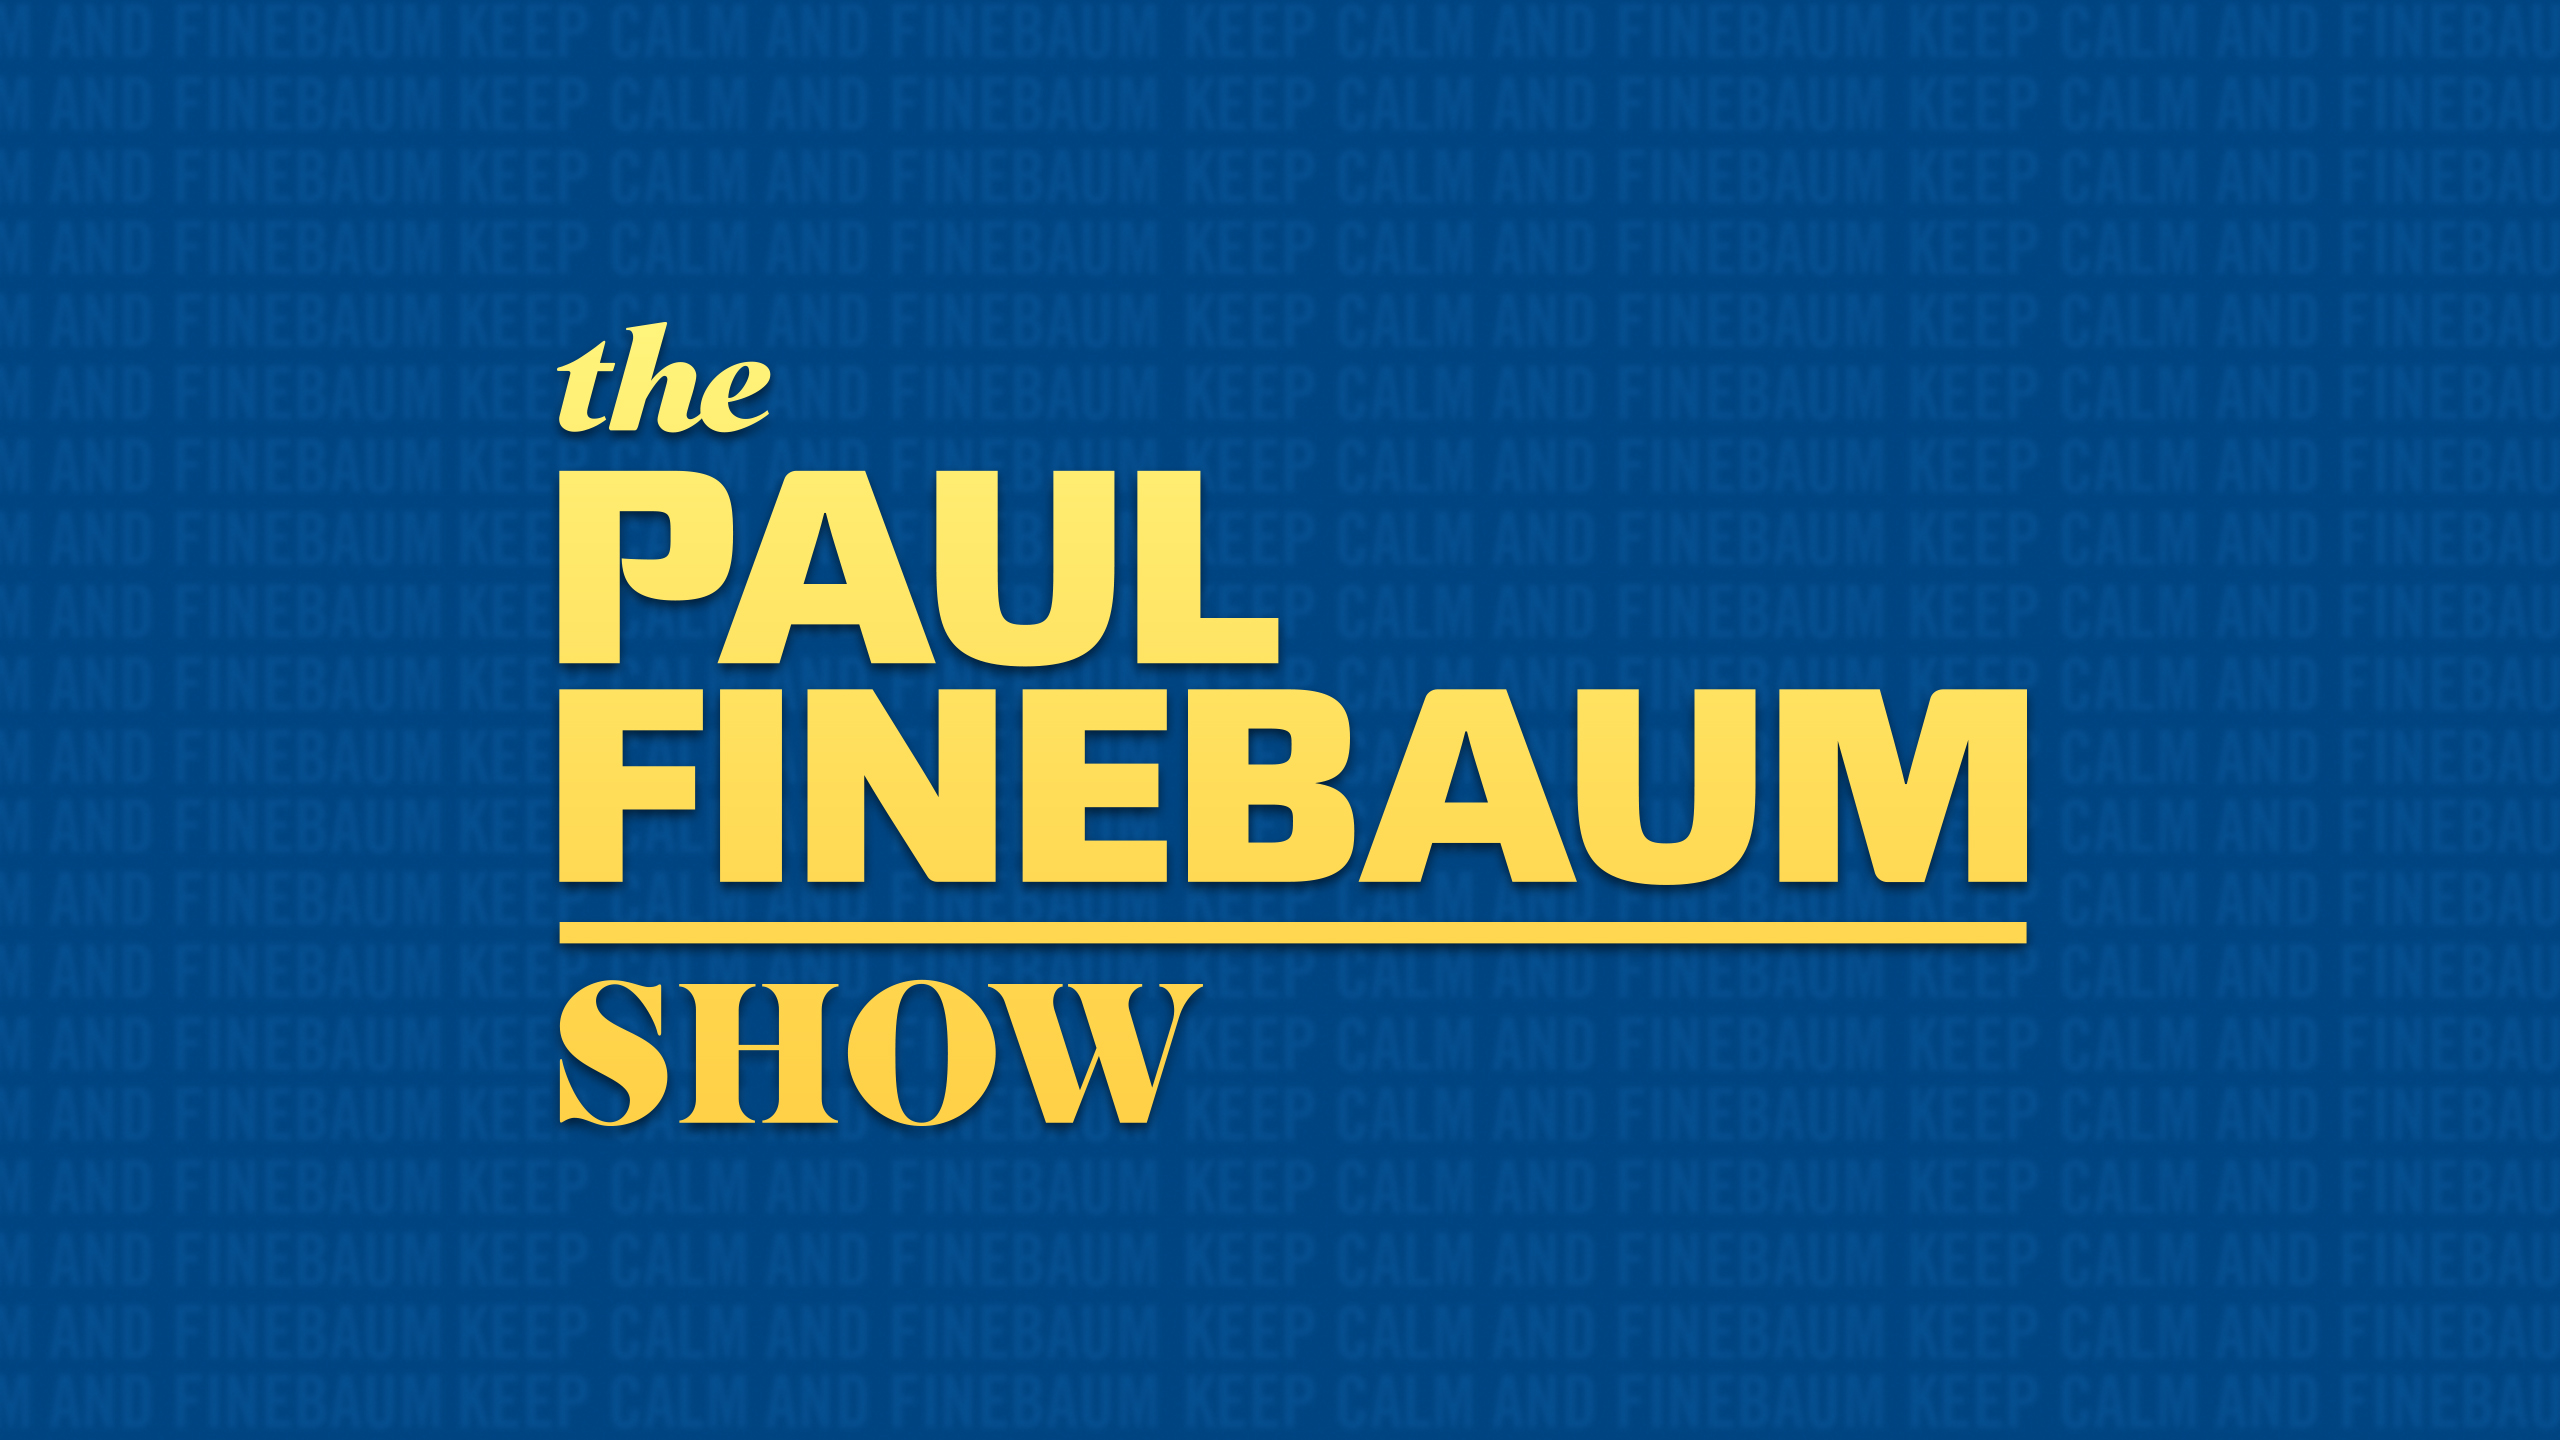 Fri, 10/19 - The Paul Finebaum Show Presented by Johnsonville